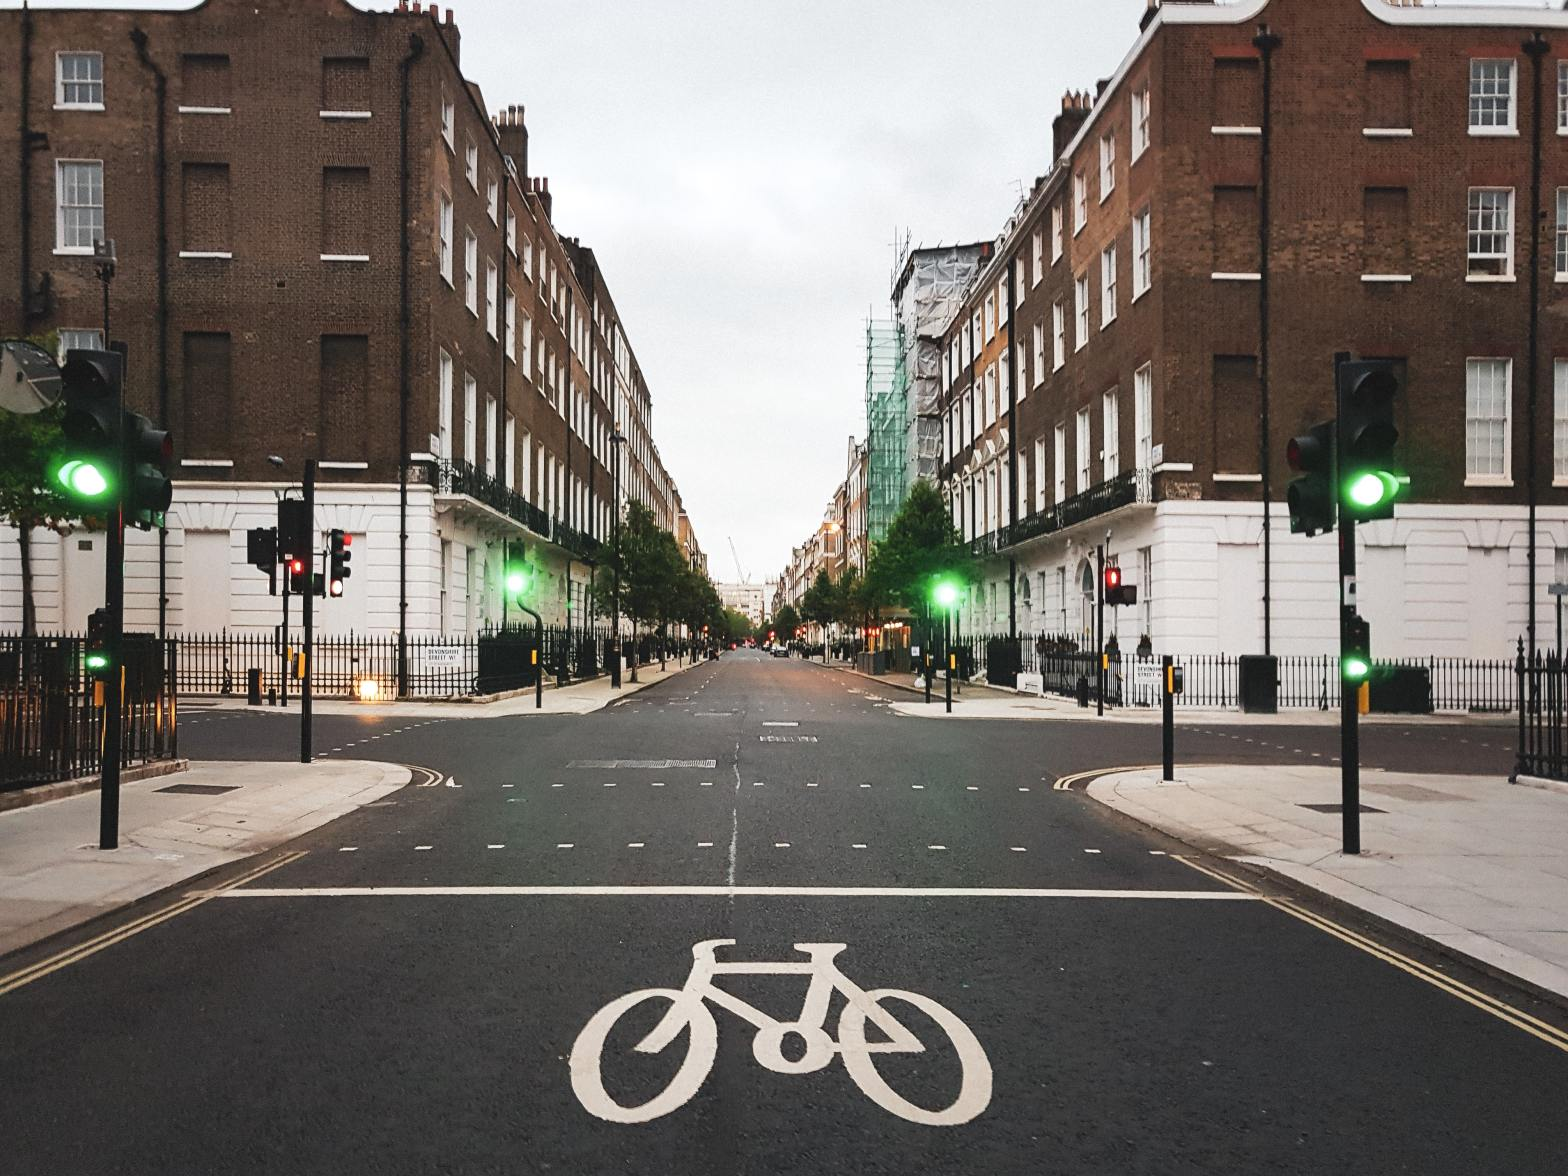 An intersection with a bike symbol painted on the road and brown and white buildings on either side